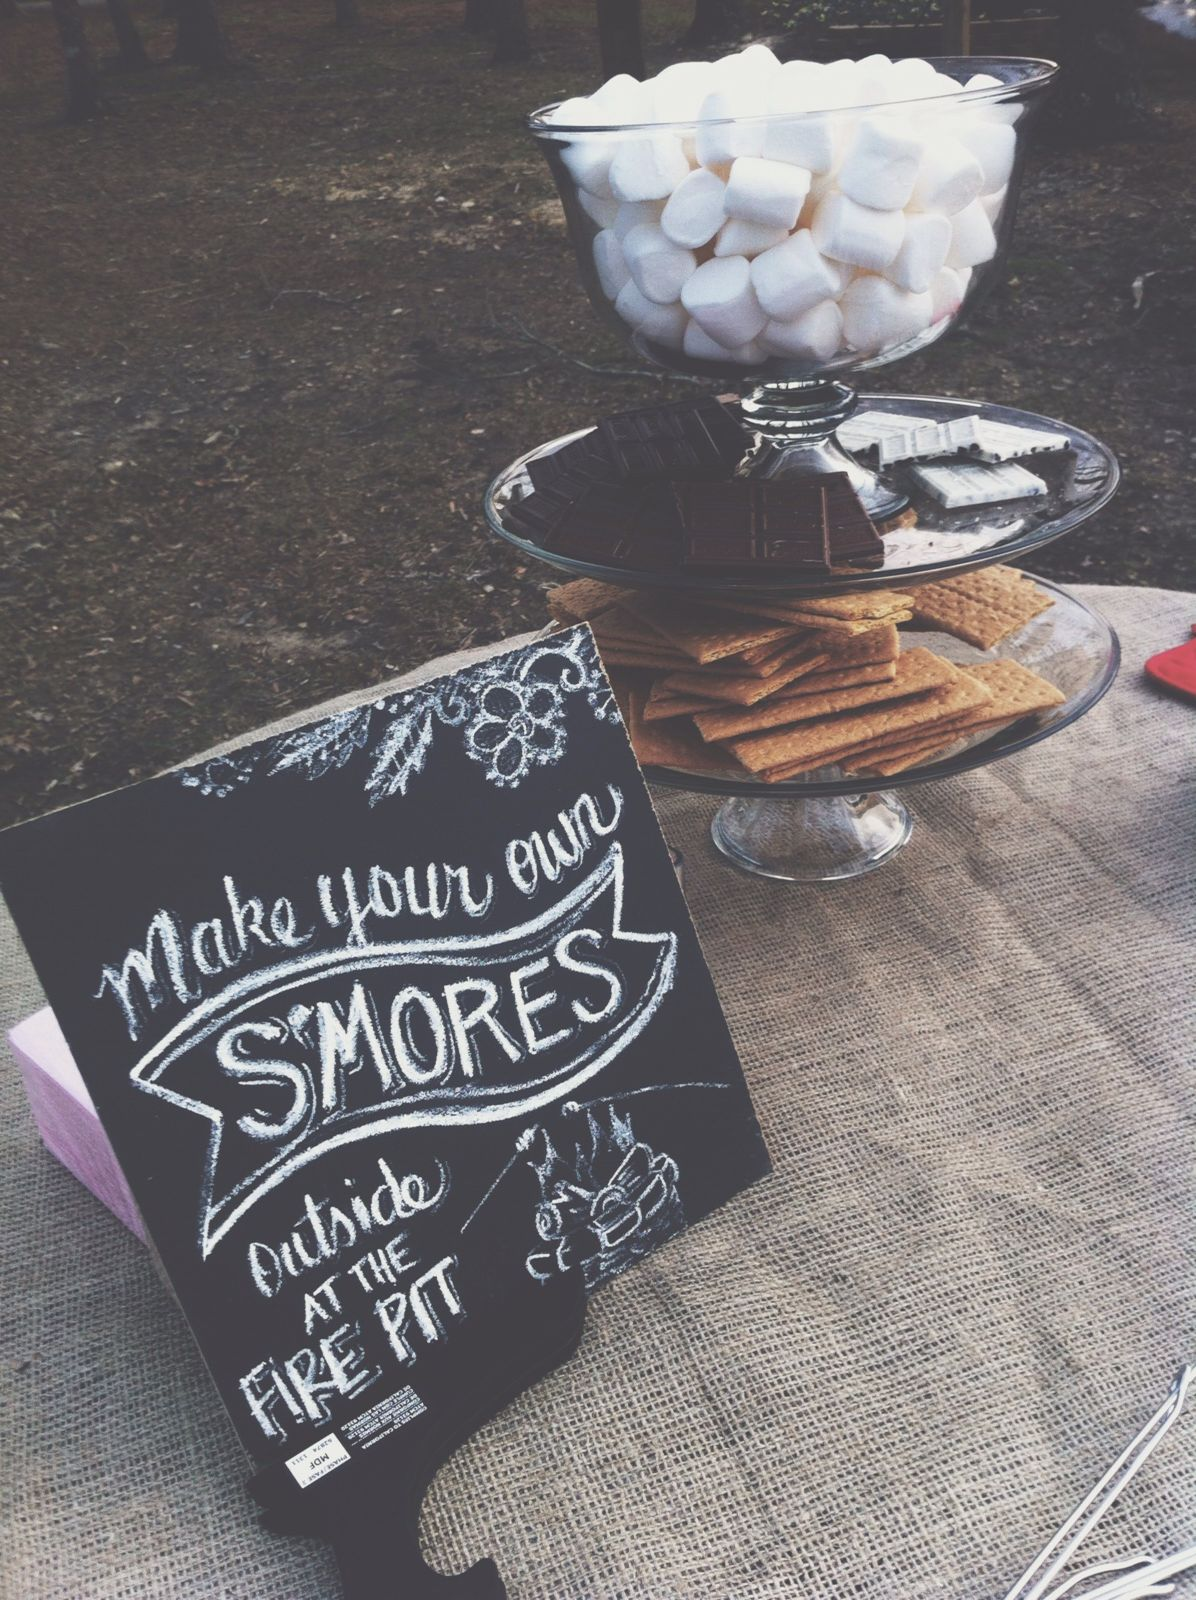 S'mores bar for a wedding!